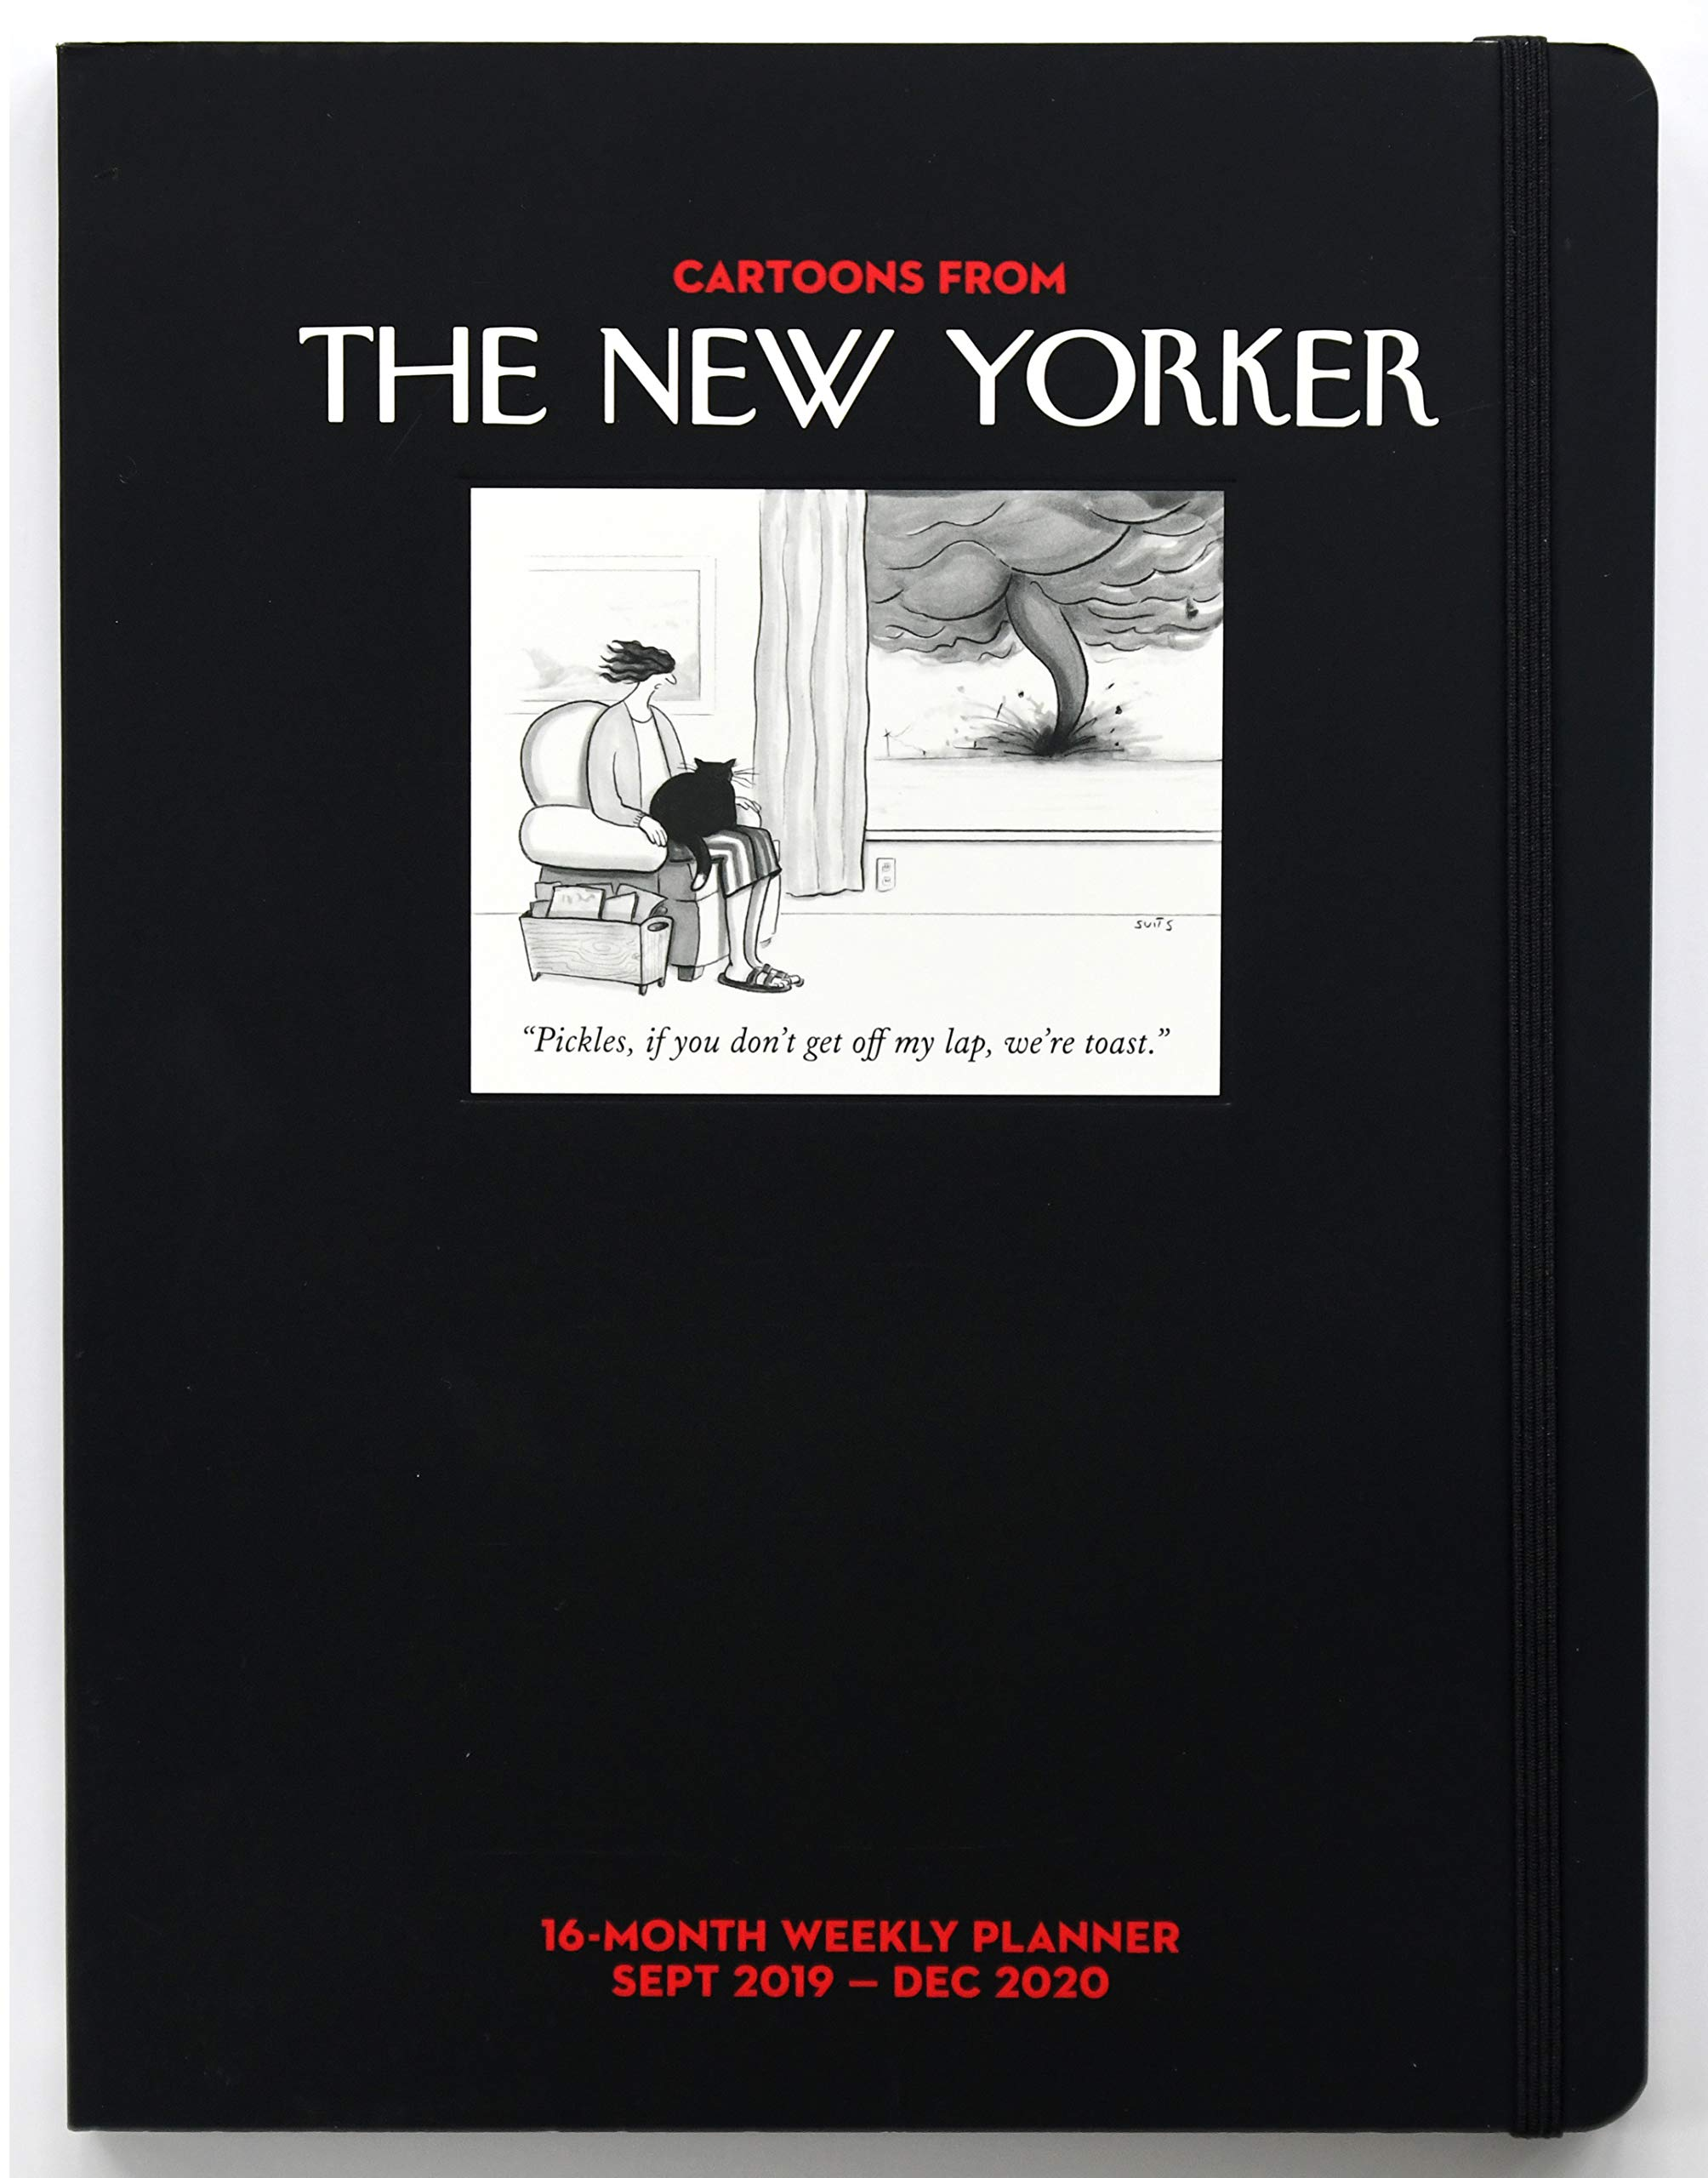 Calendrier Om 2020 16.Cartoons From The New Yorker 16 Month 2019 2020 Weekly